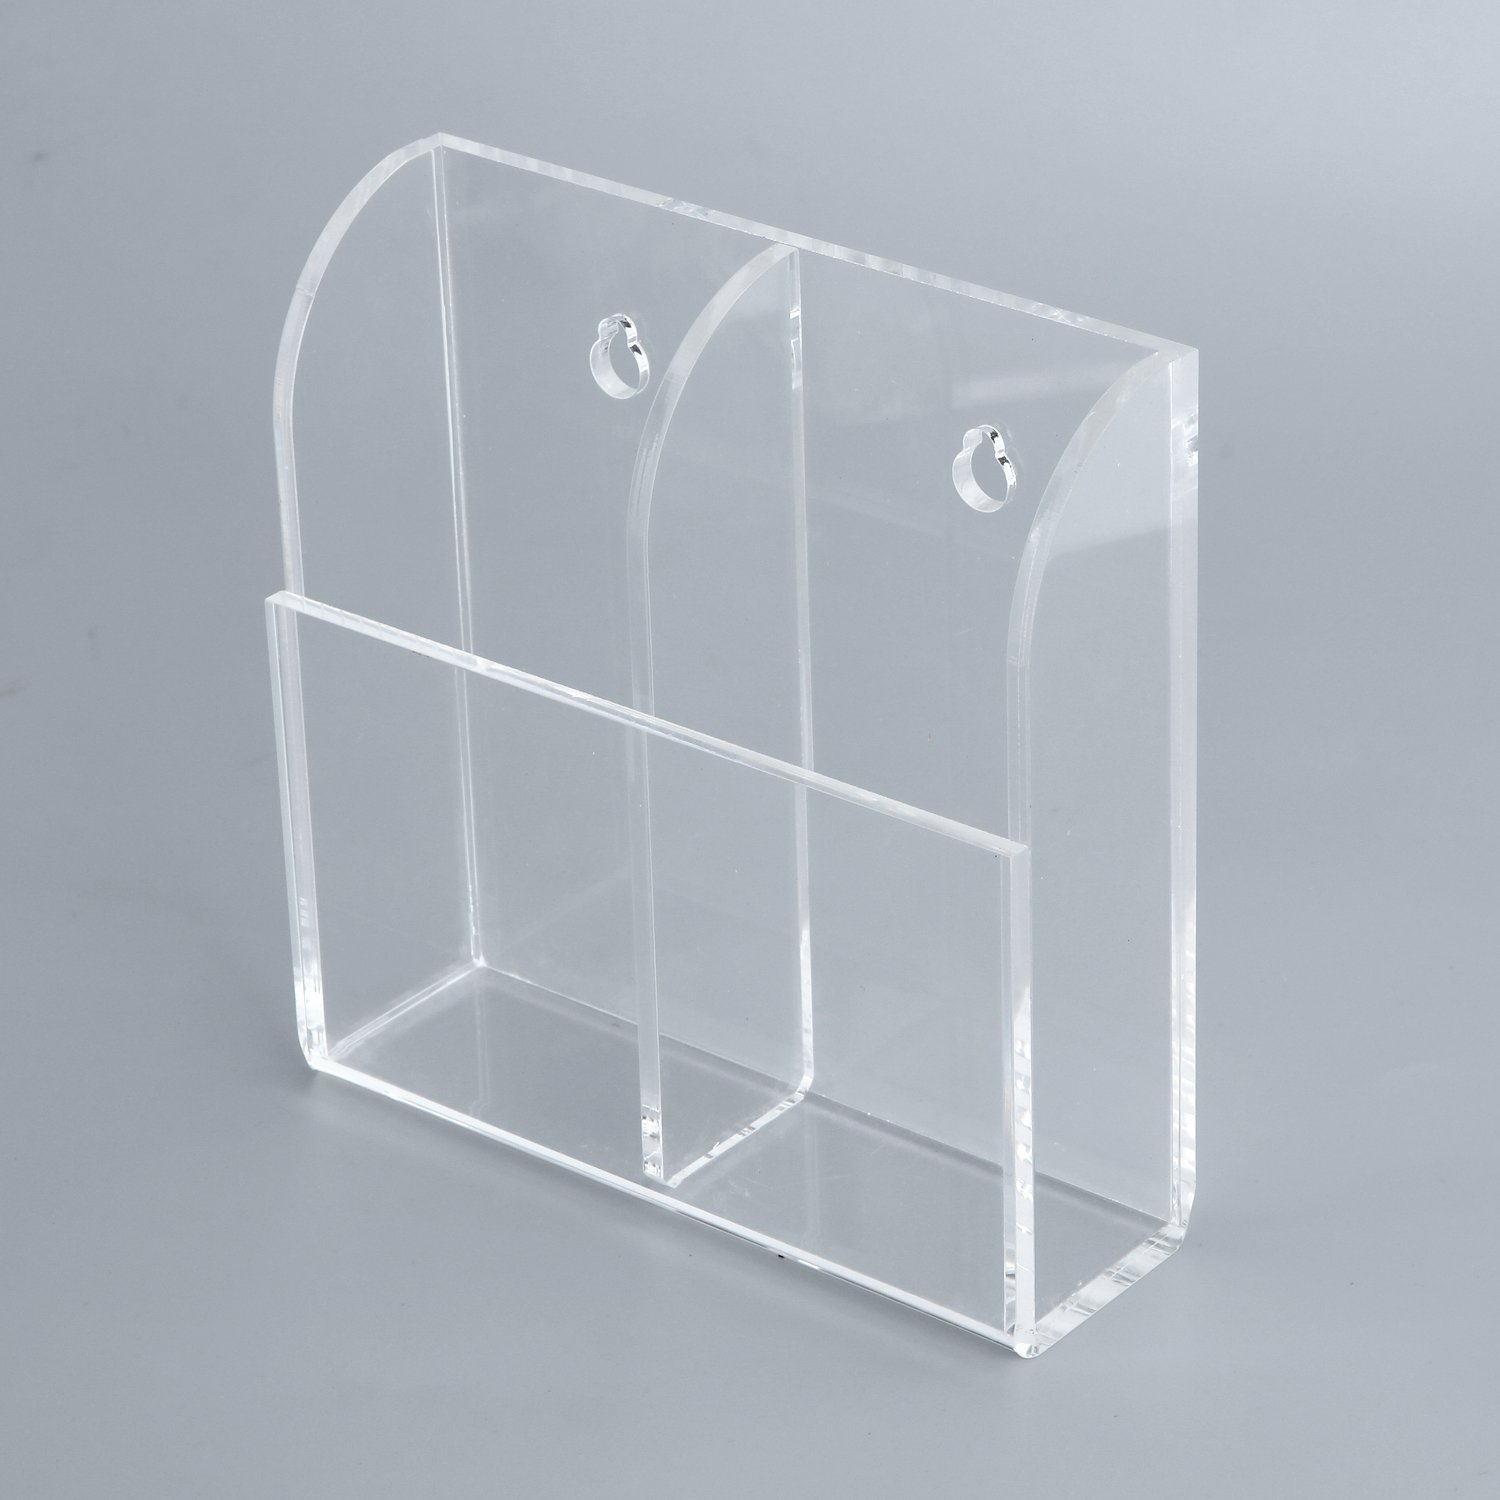 Acrylic Remote Control Holder Wall Mount Media Organizer Box,Remote Controls Organizer Storage Box With 2 Compartments,Clear